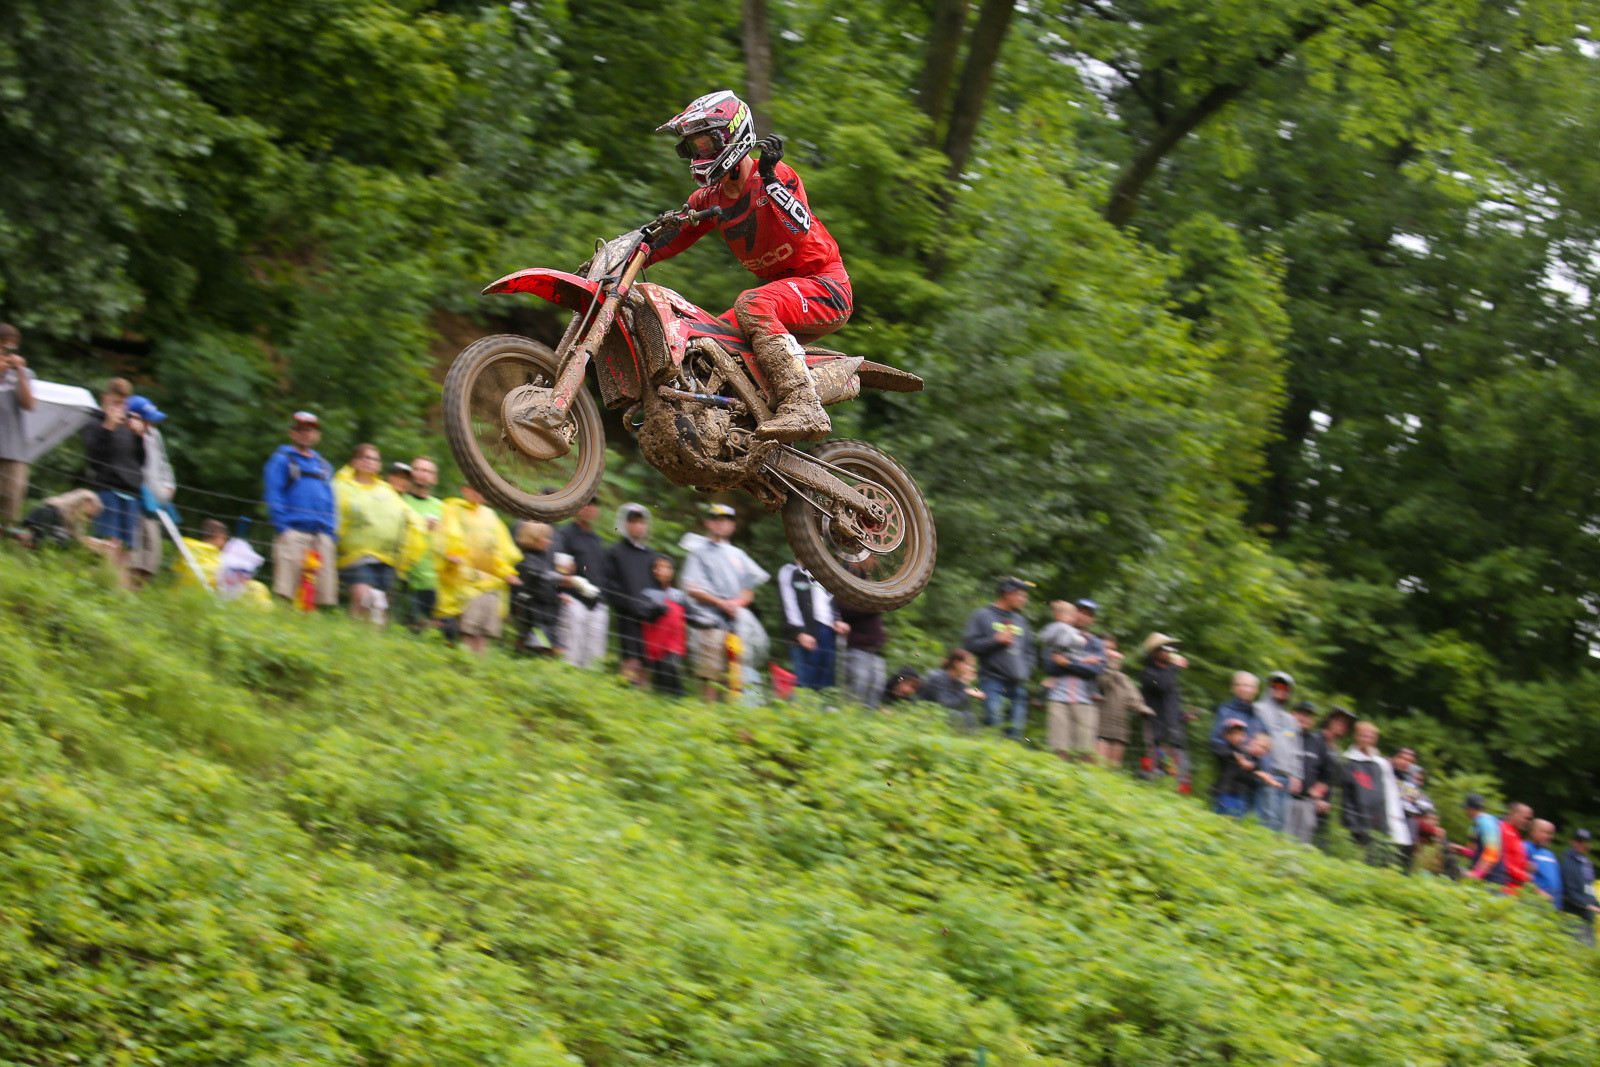 Hunter Lawrence quickly took over the lead, and held it for the win in moto one.